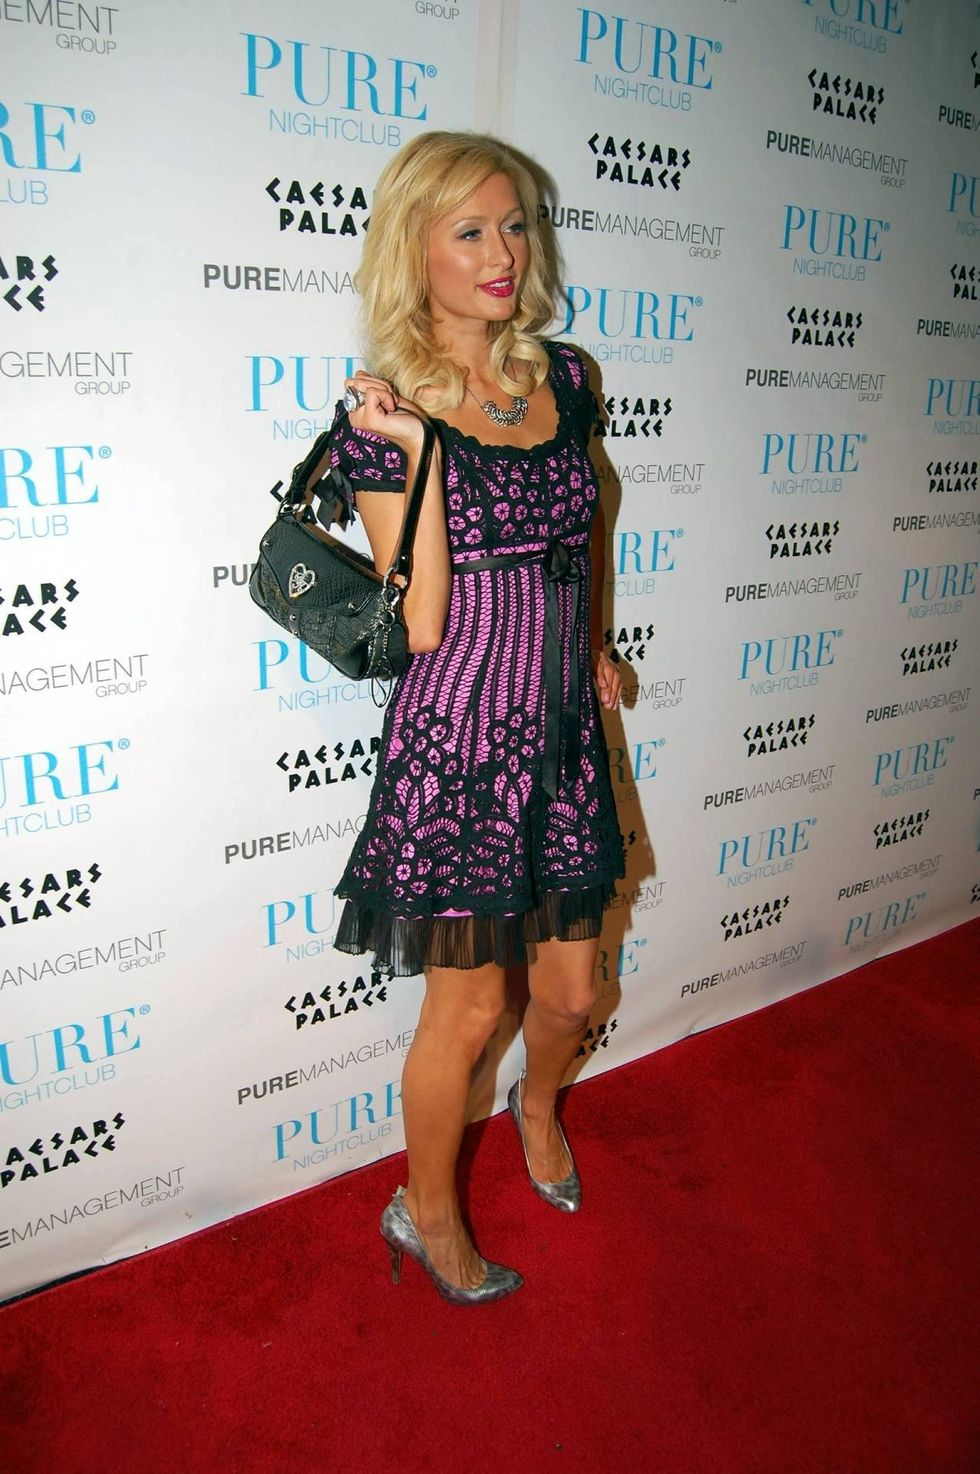 paris-hilton-and-nicky-hilton-nicky-hilton-25th-birthday-shindig-at-pure-nightclub-in-las-vegas-01